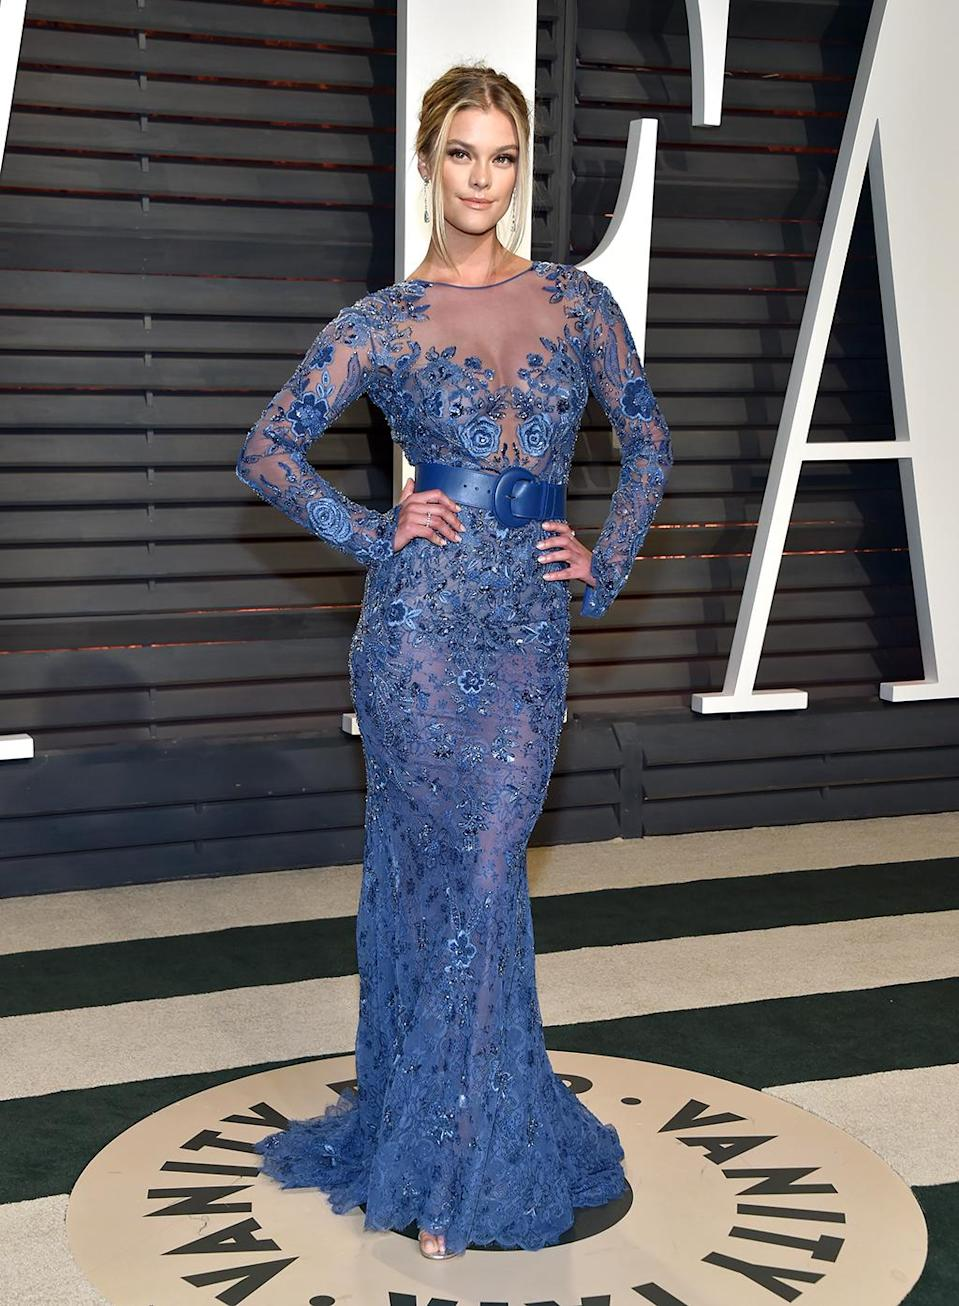 <p>Nina Agdal attends the 2017 Vanity Fair Oscar Party hosted by Graydon Carter at Wallis Annenberg Center for the Performing Arts on February 26, 2017 in Beverly Hills, California. (Photo by Pascal Le Segretain/Getty Images) </p>